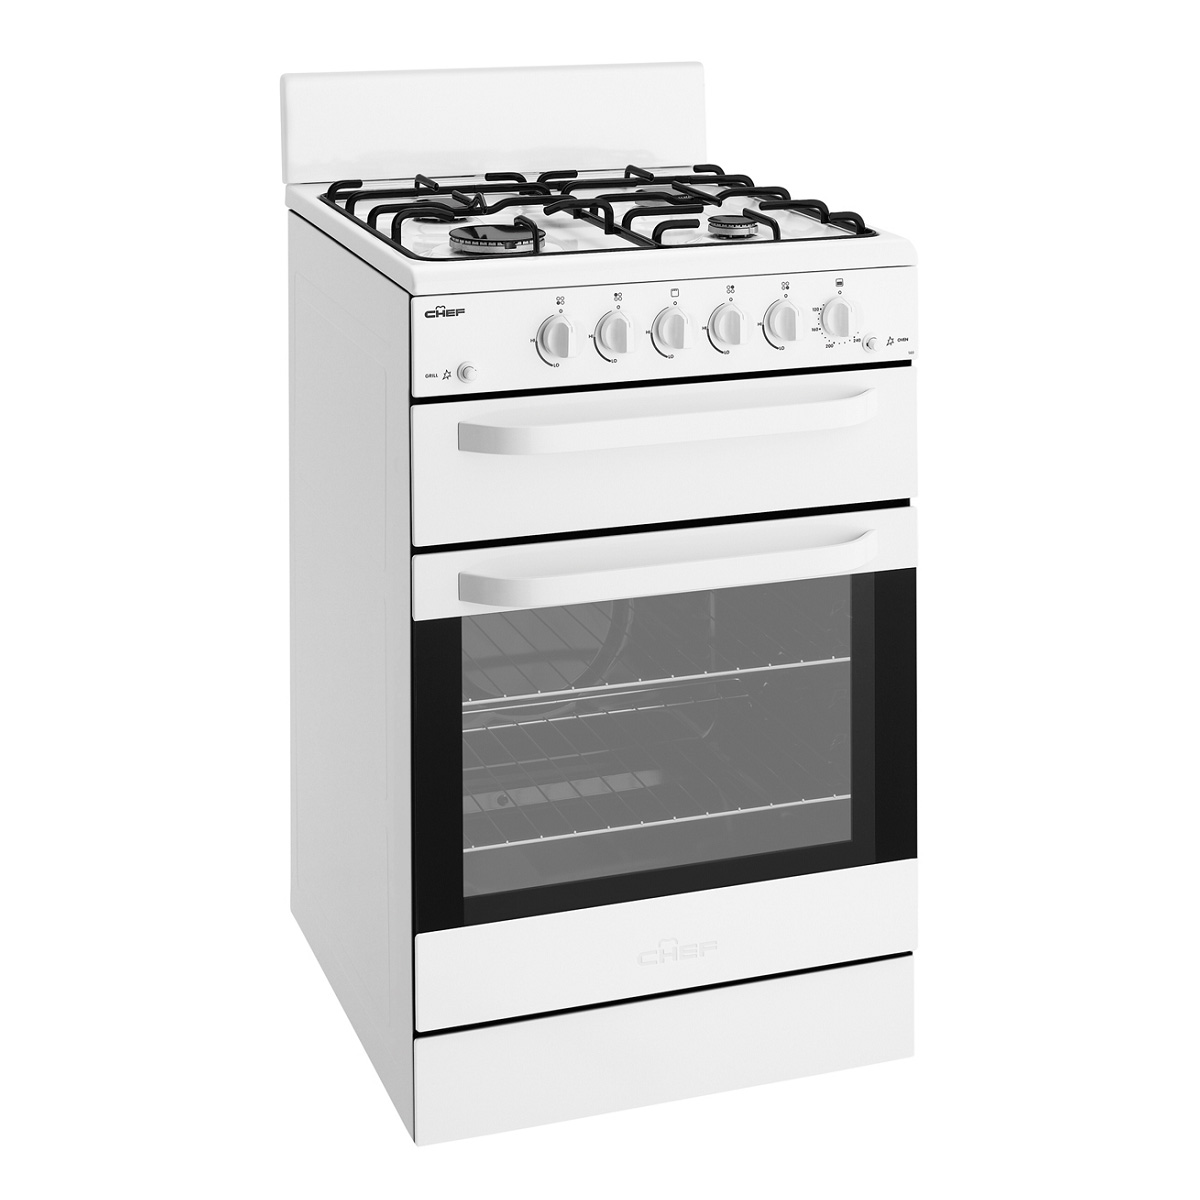 Chef CFG503WALP Freestanding Gas Oven/Stove